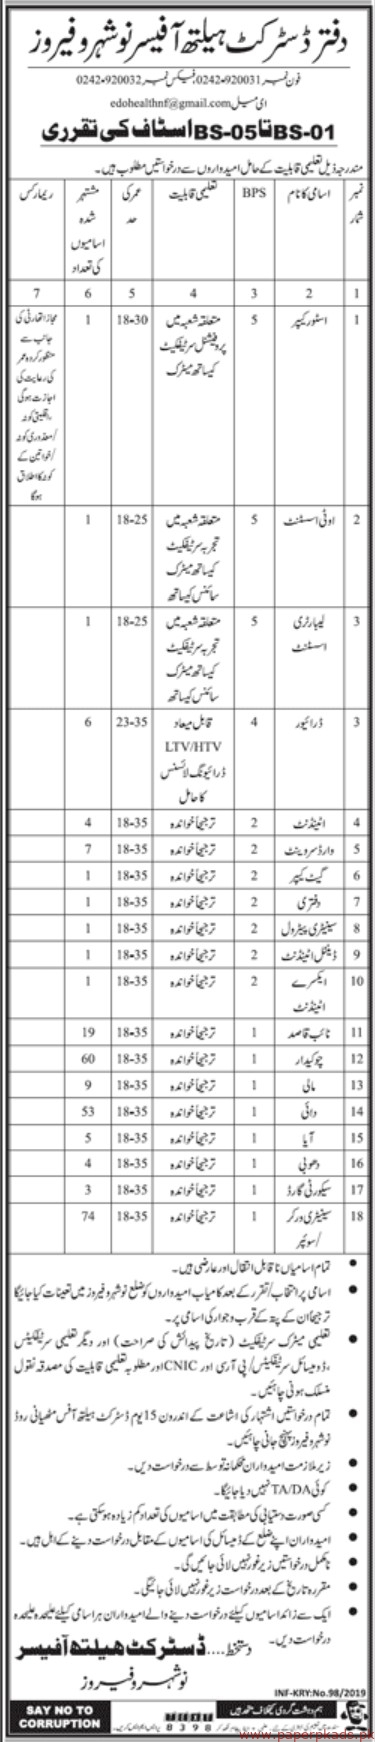 District Health Officer Nowshera Feroz Jobs 2019 Latest